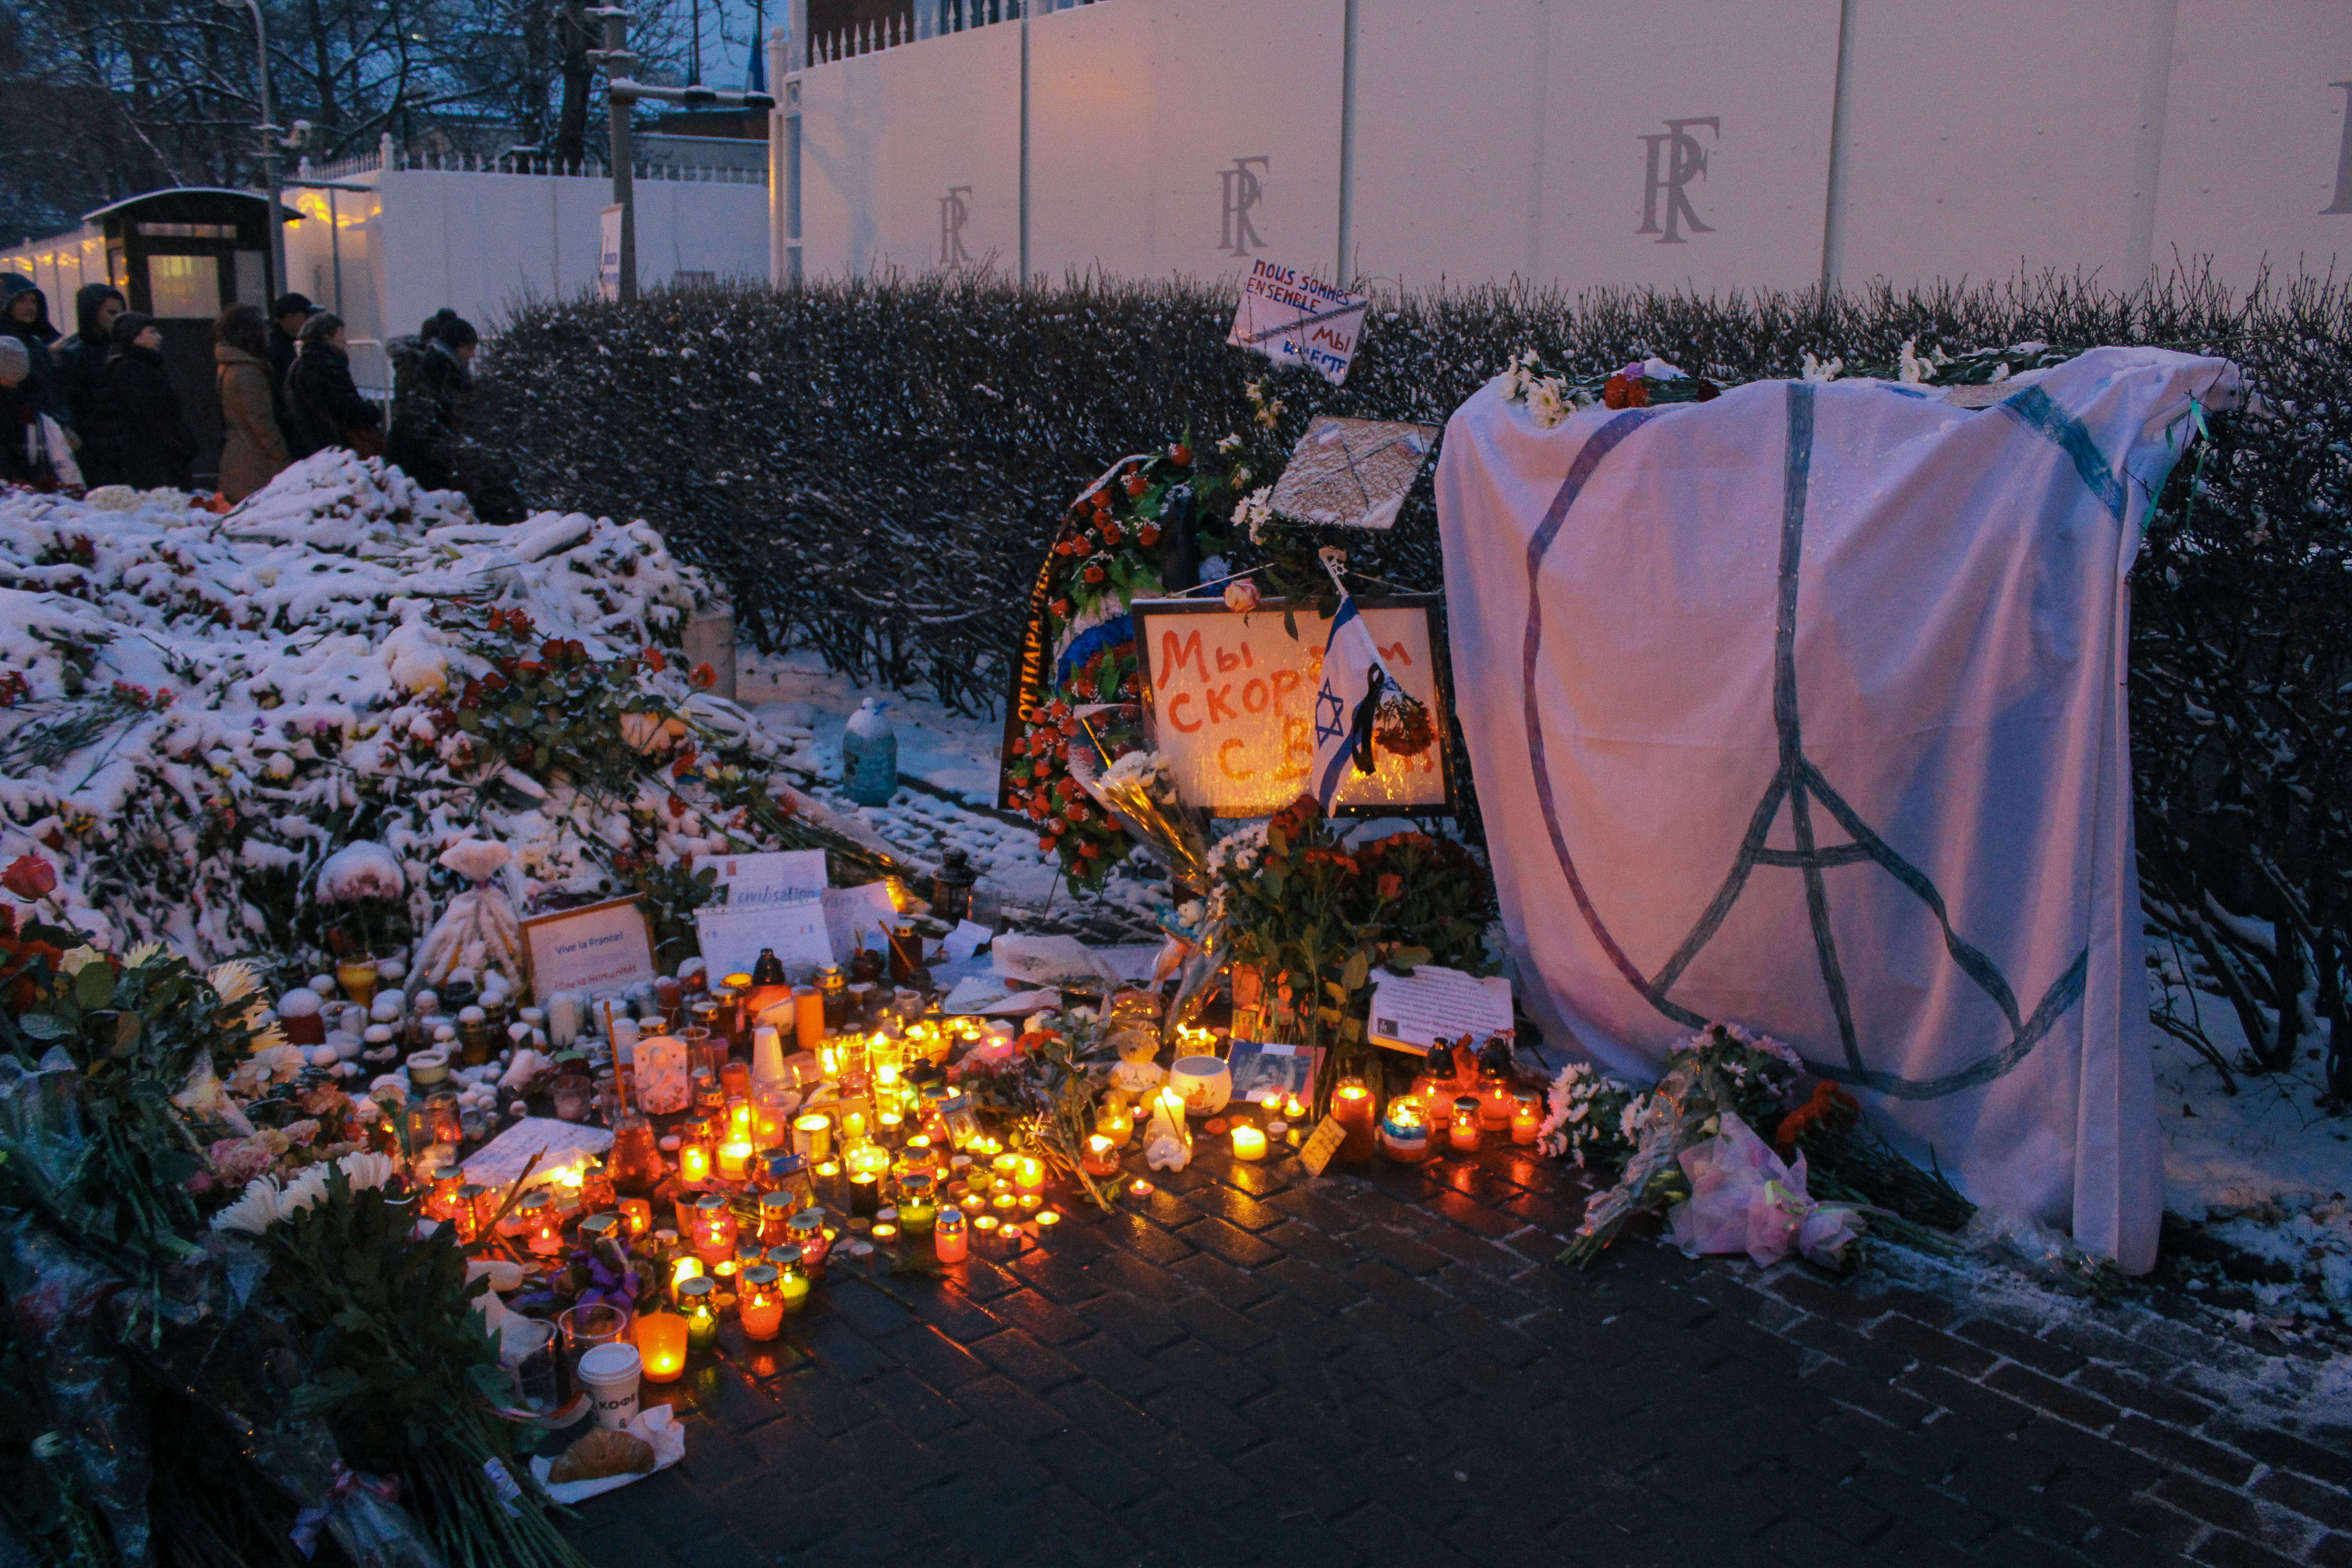 New Details Reveal Paris Attackers Planned To Act Again Memorial to November 2015 Paris attacks at French embassy in Moscow 12